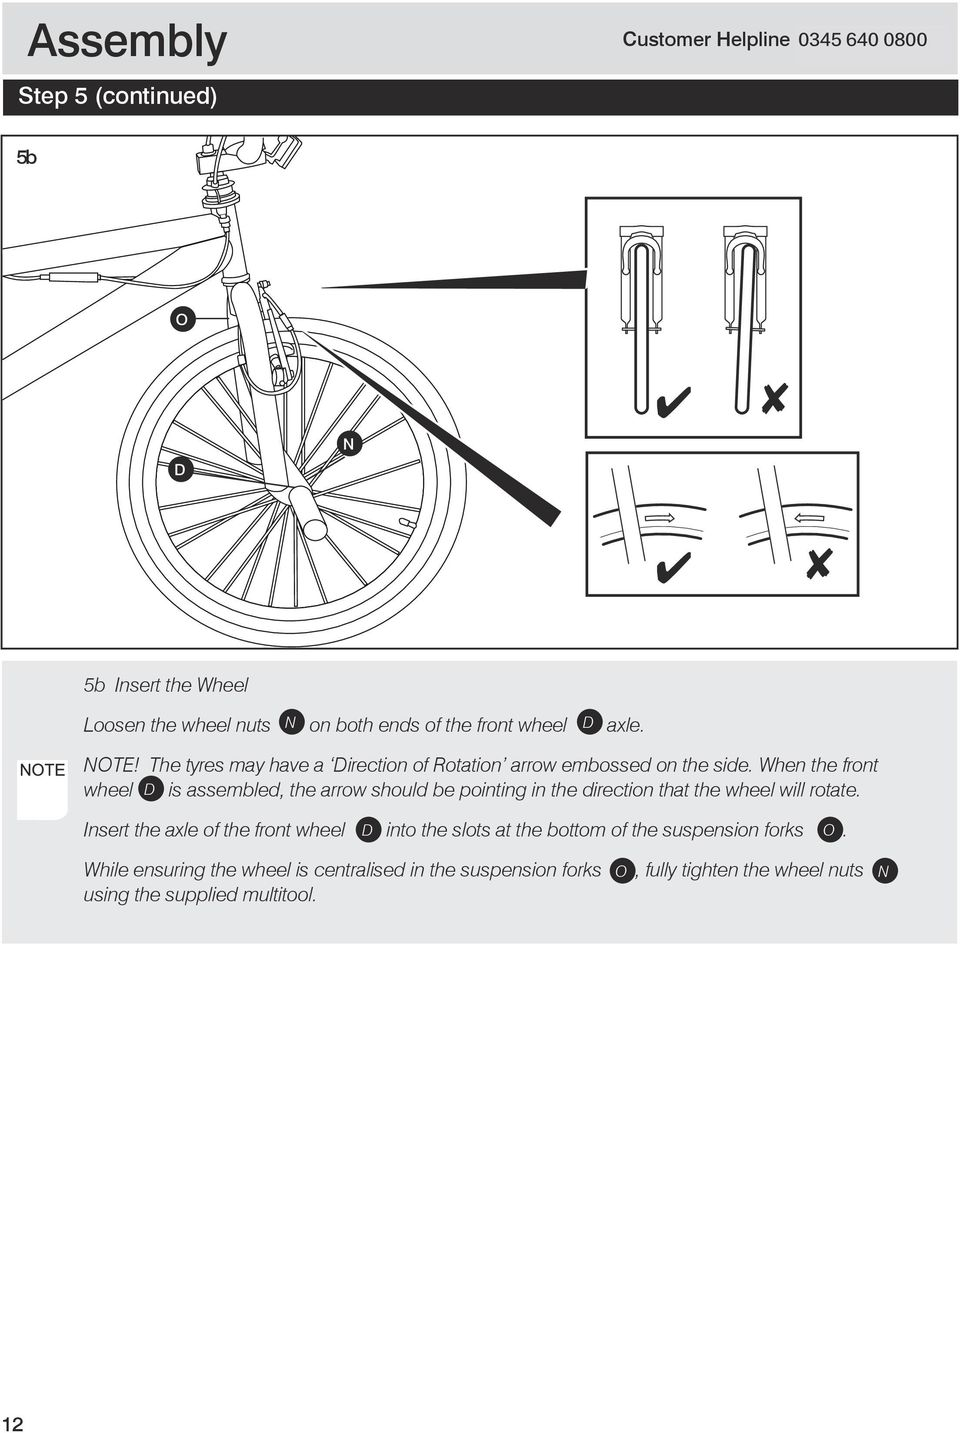 When the front wheel D is assembled, the arrow should be pointing in the direction that the wheel will rotate.